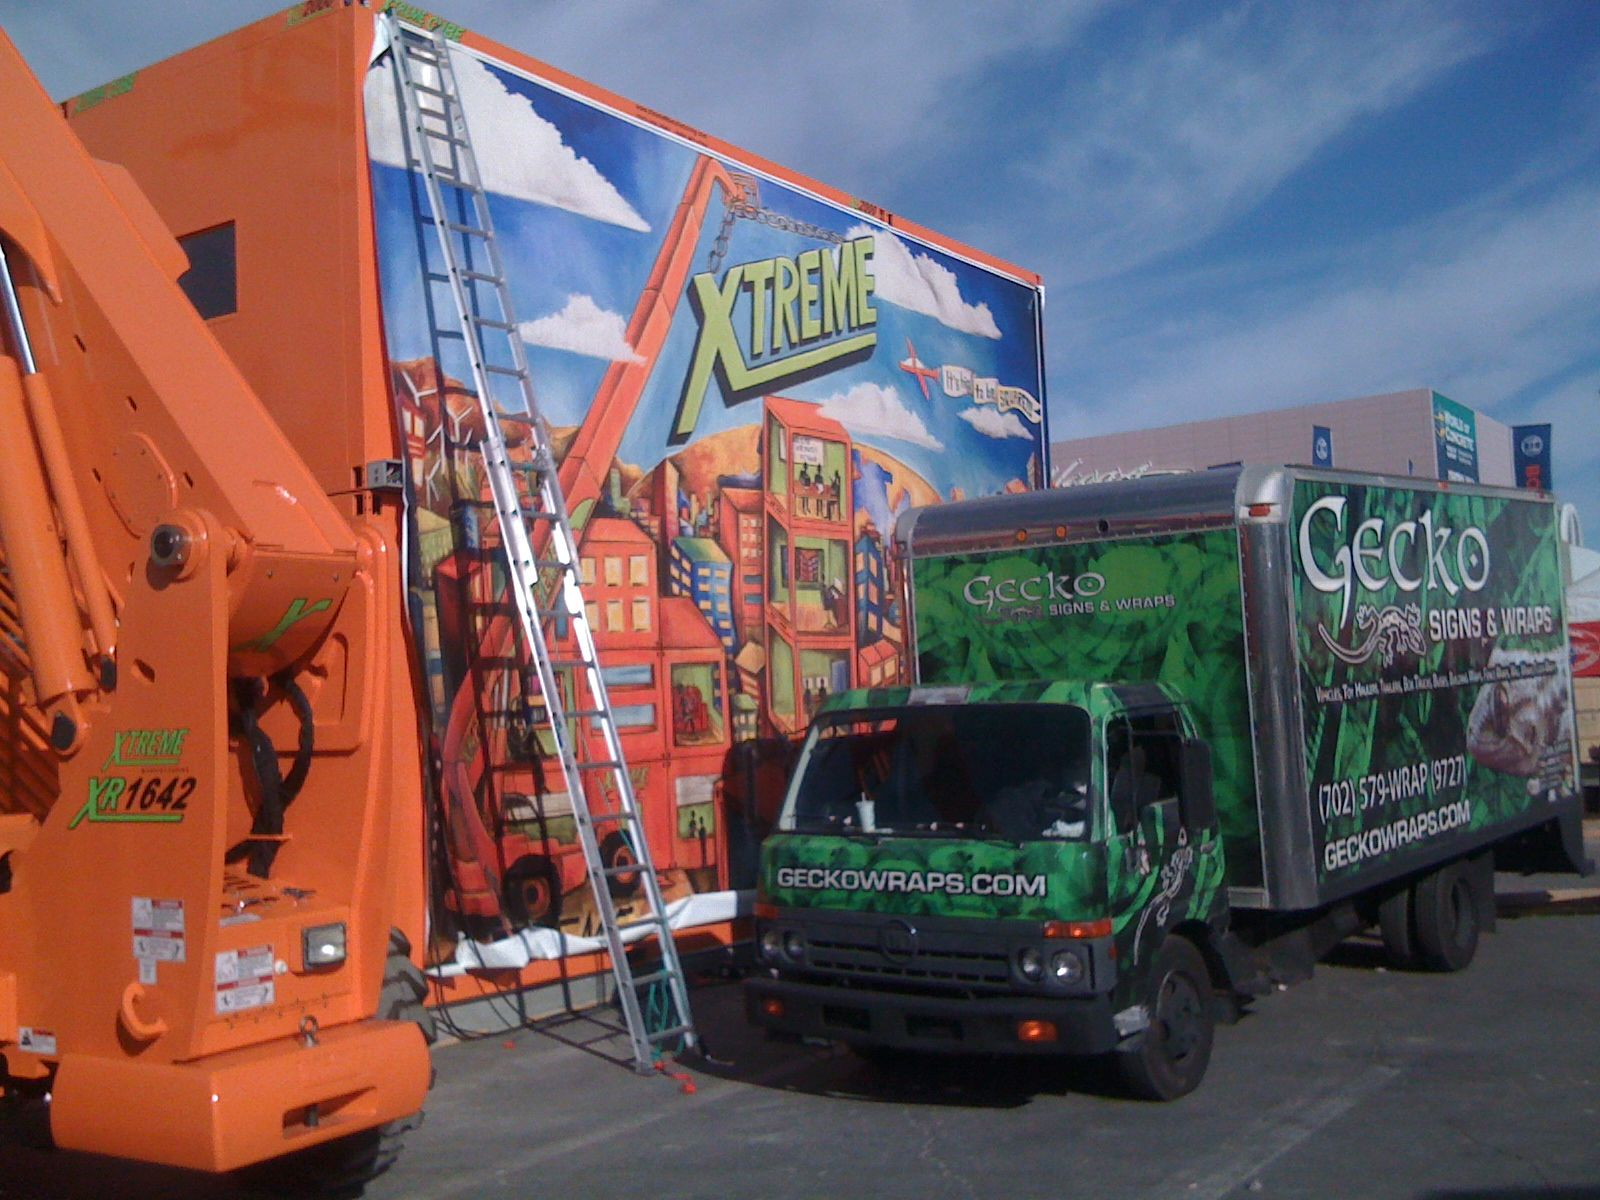 Ts22 stretched banner frame las vegas tensioning solutions ts22 stretched banner frame las vegas tensioning solutions banner stretching system is the jeuxipadfo Choice Image